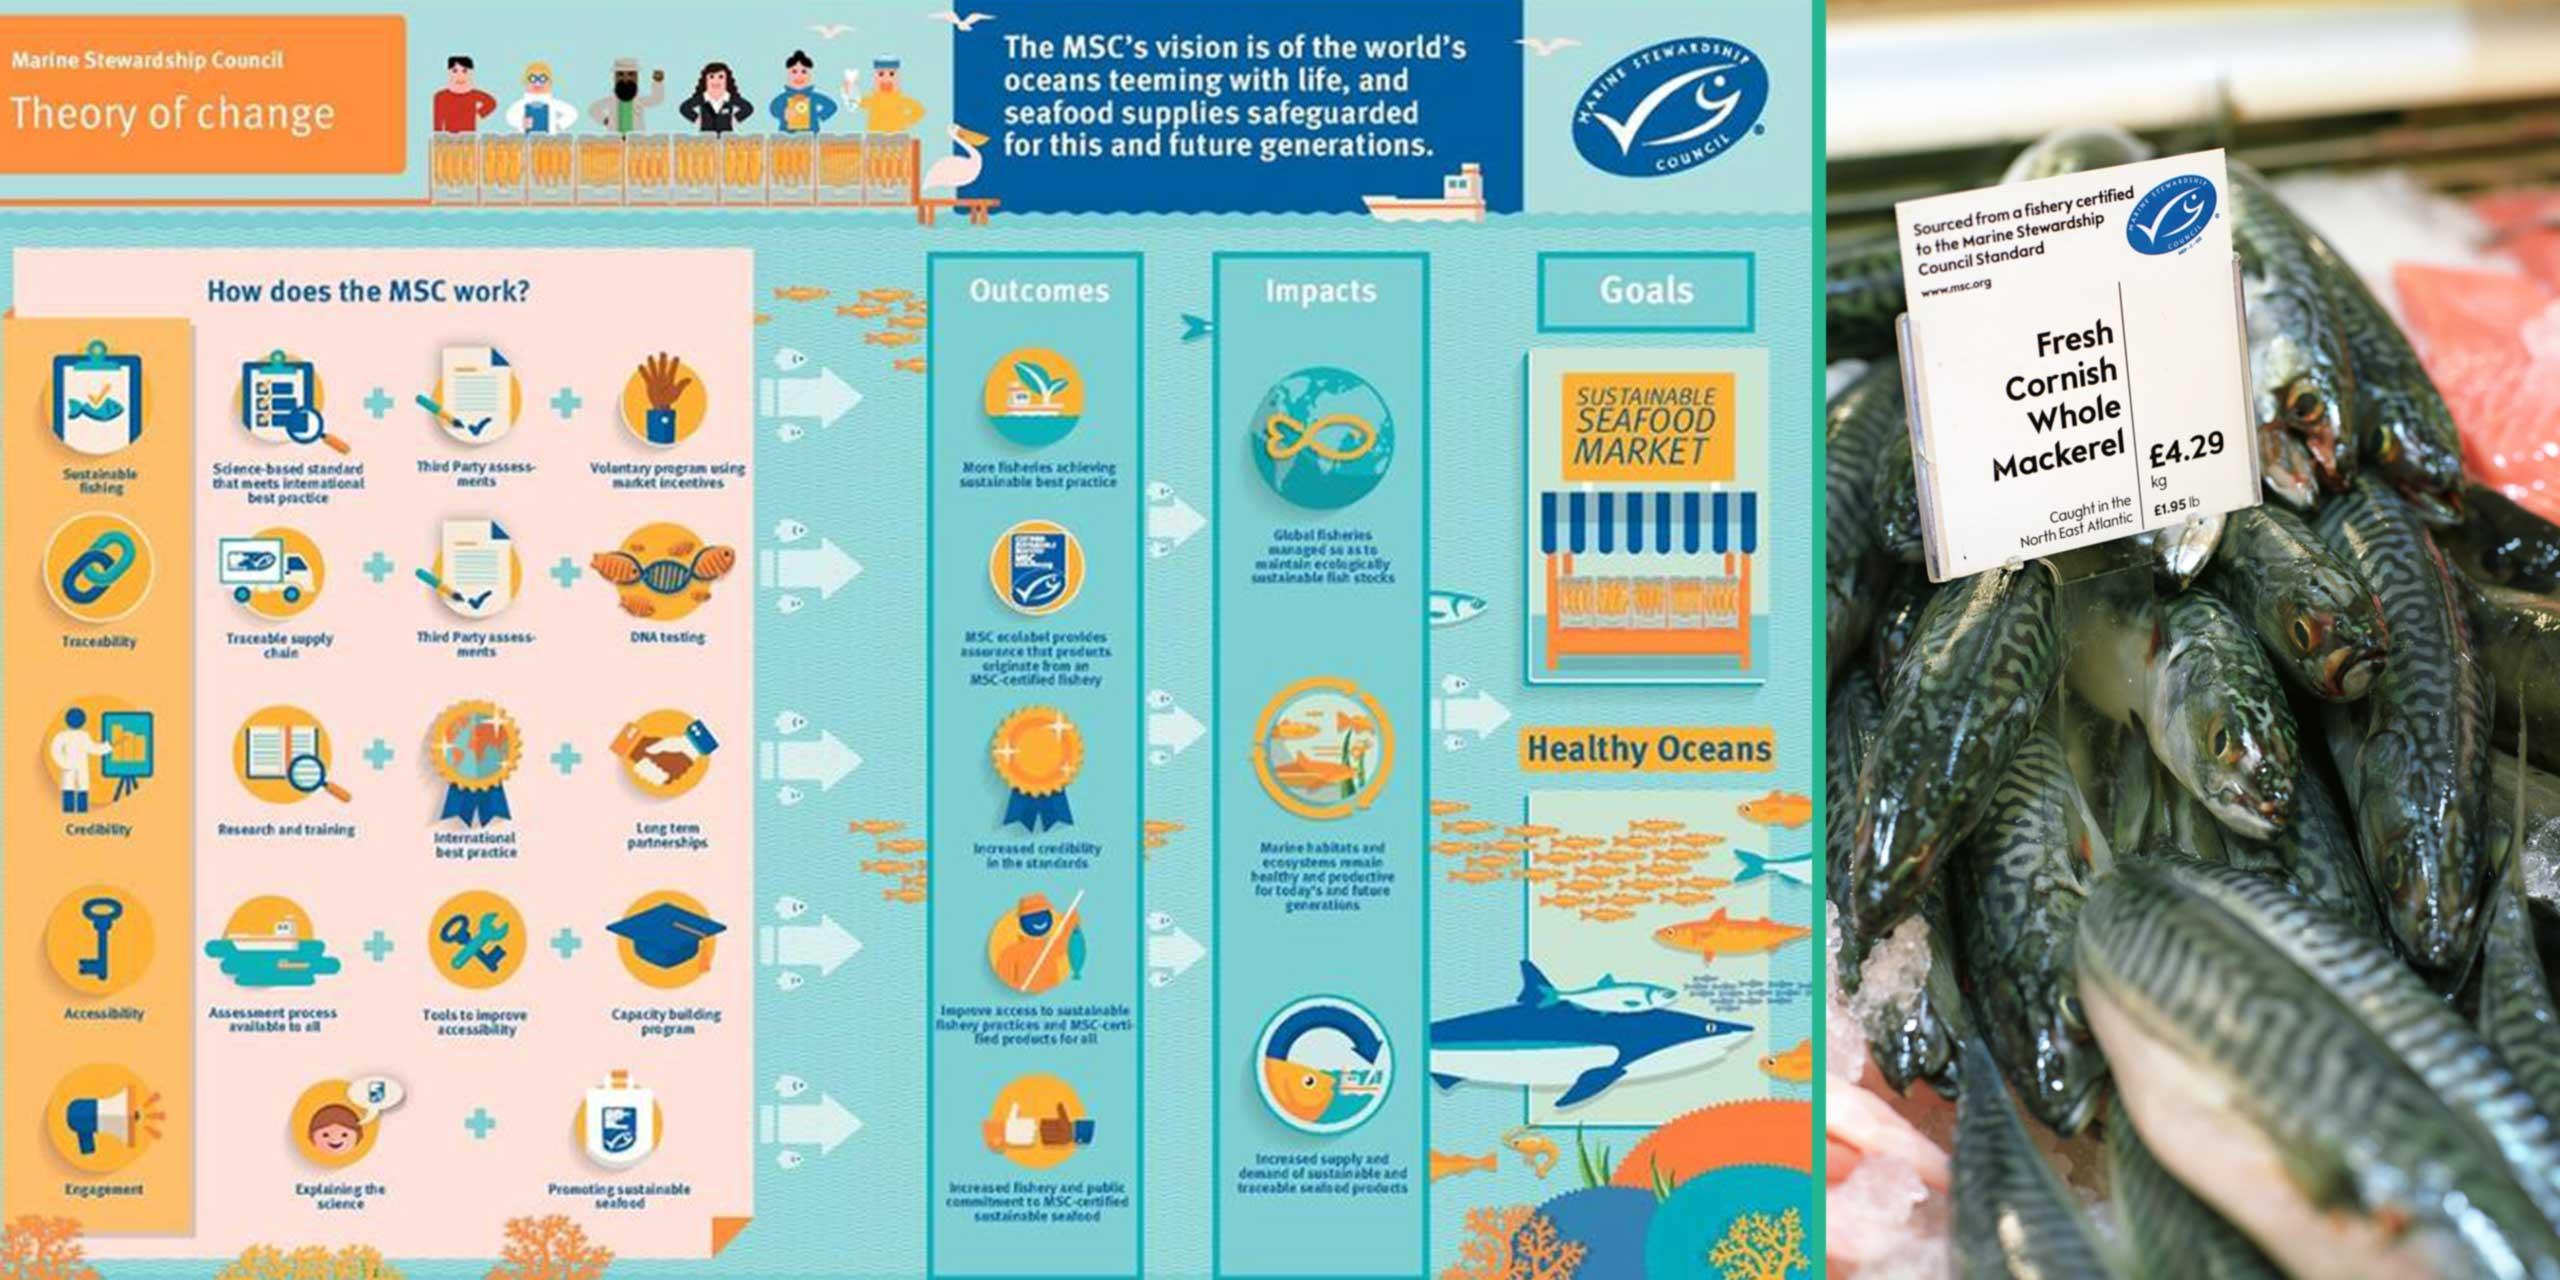 http://s12982.pcdn.co/wp-content/uploads/2014/02/marine-stewardship-council-sl2.jpg